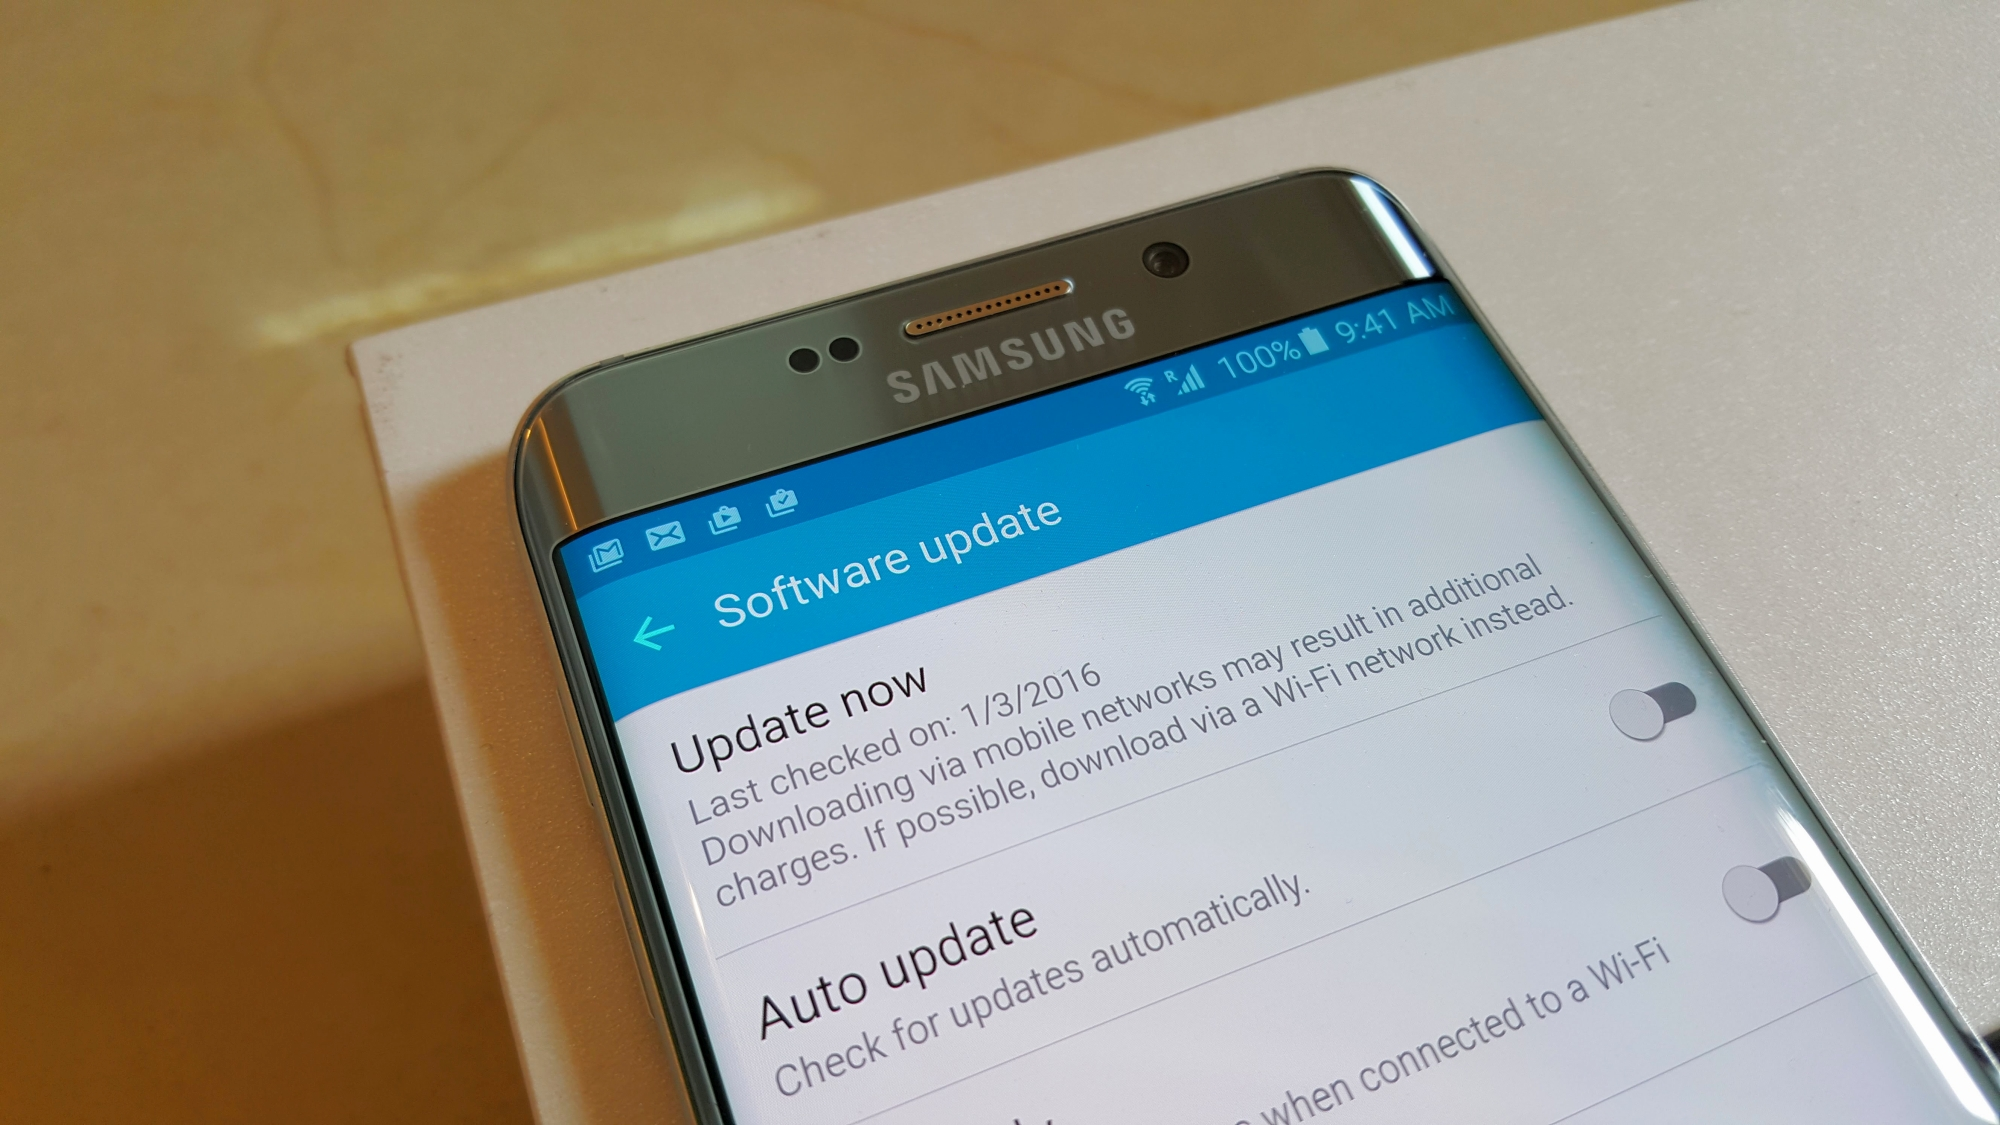 2-24-2016 Firmware Updates: Galaxy A3, Galaxy S6, Galaxy Note 5, and